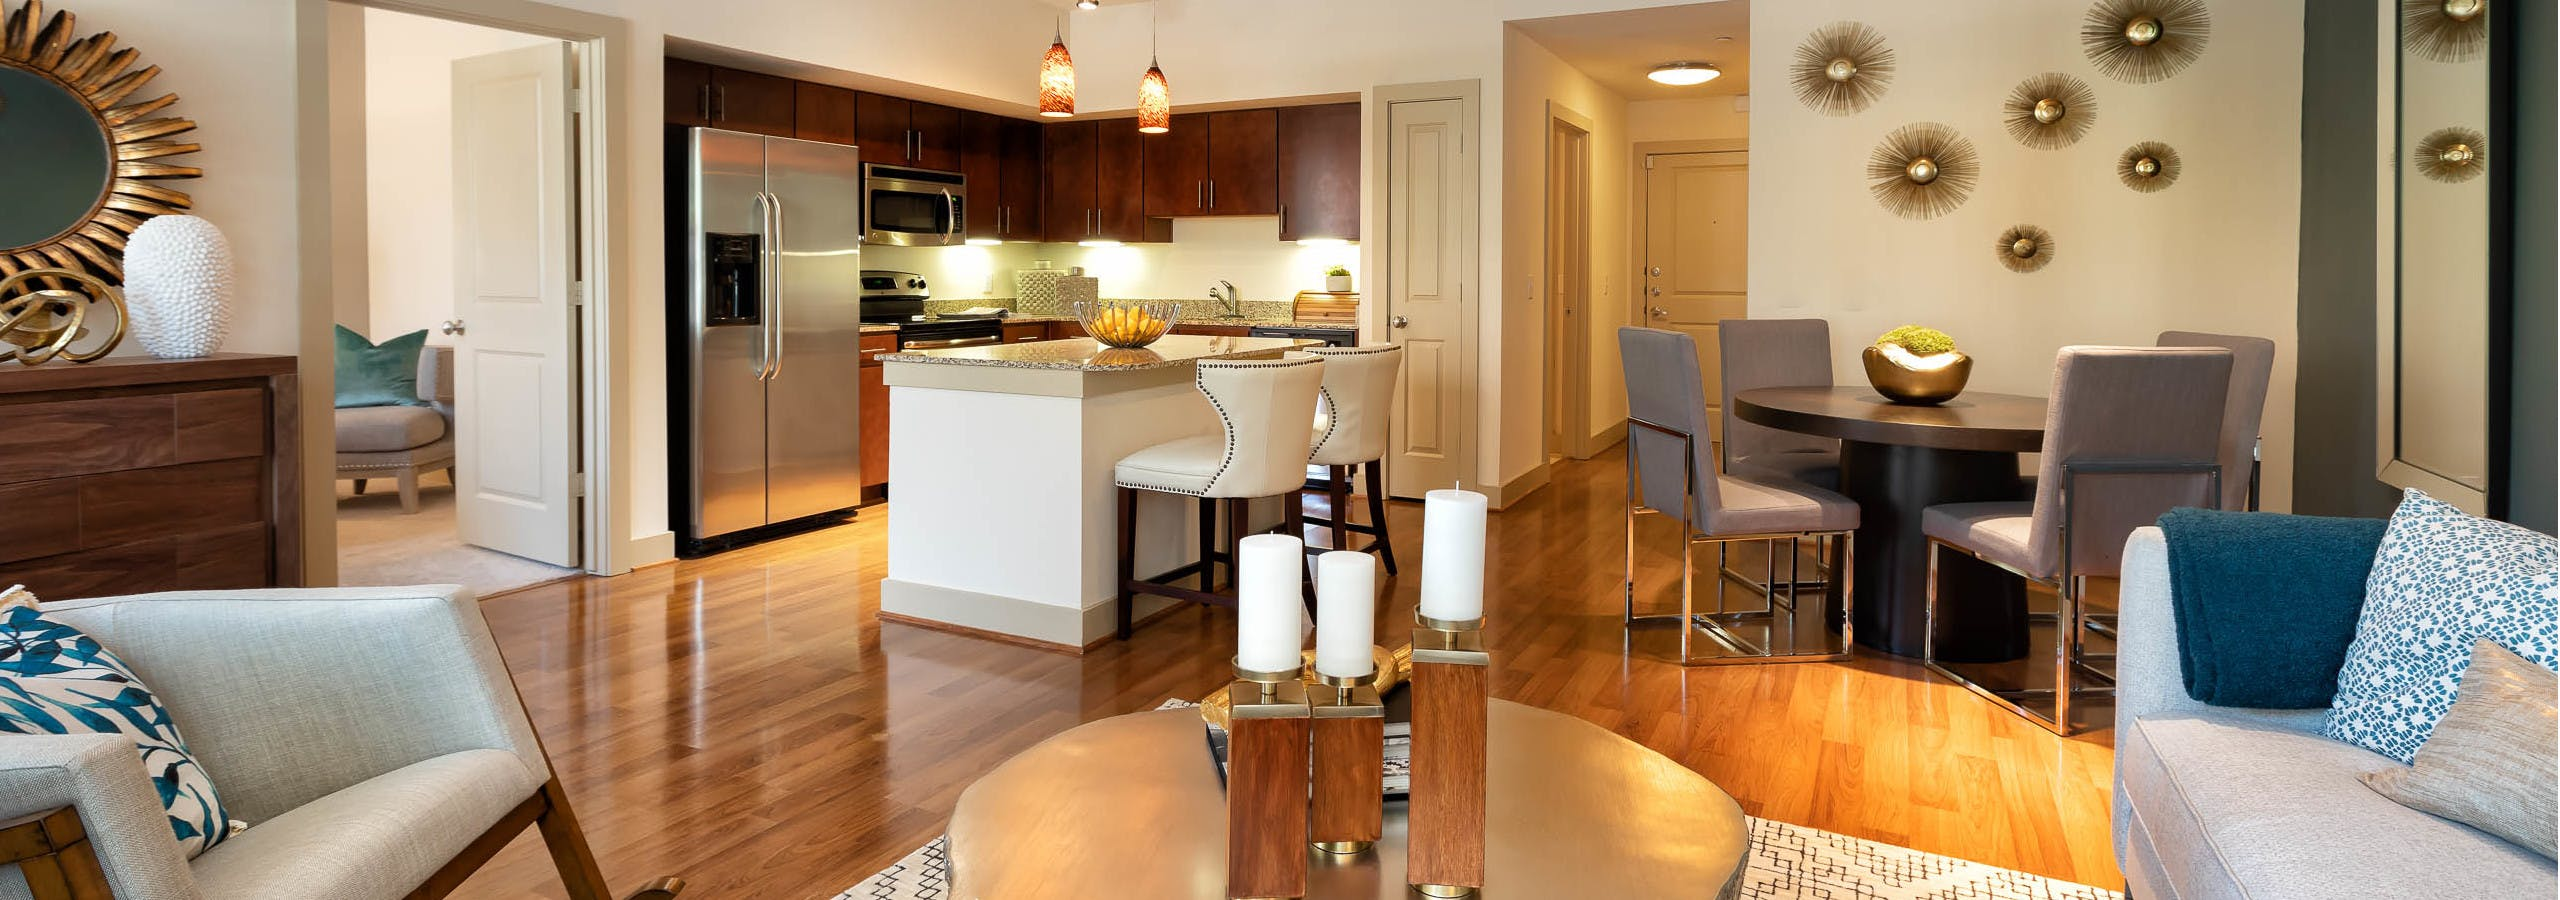 Living, dining room & kitchen